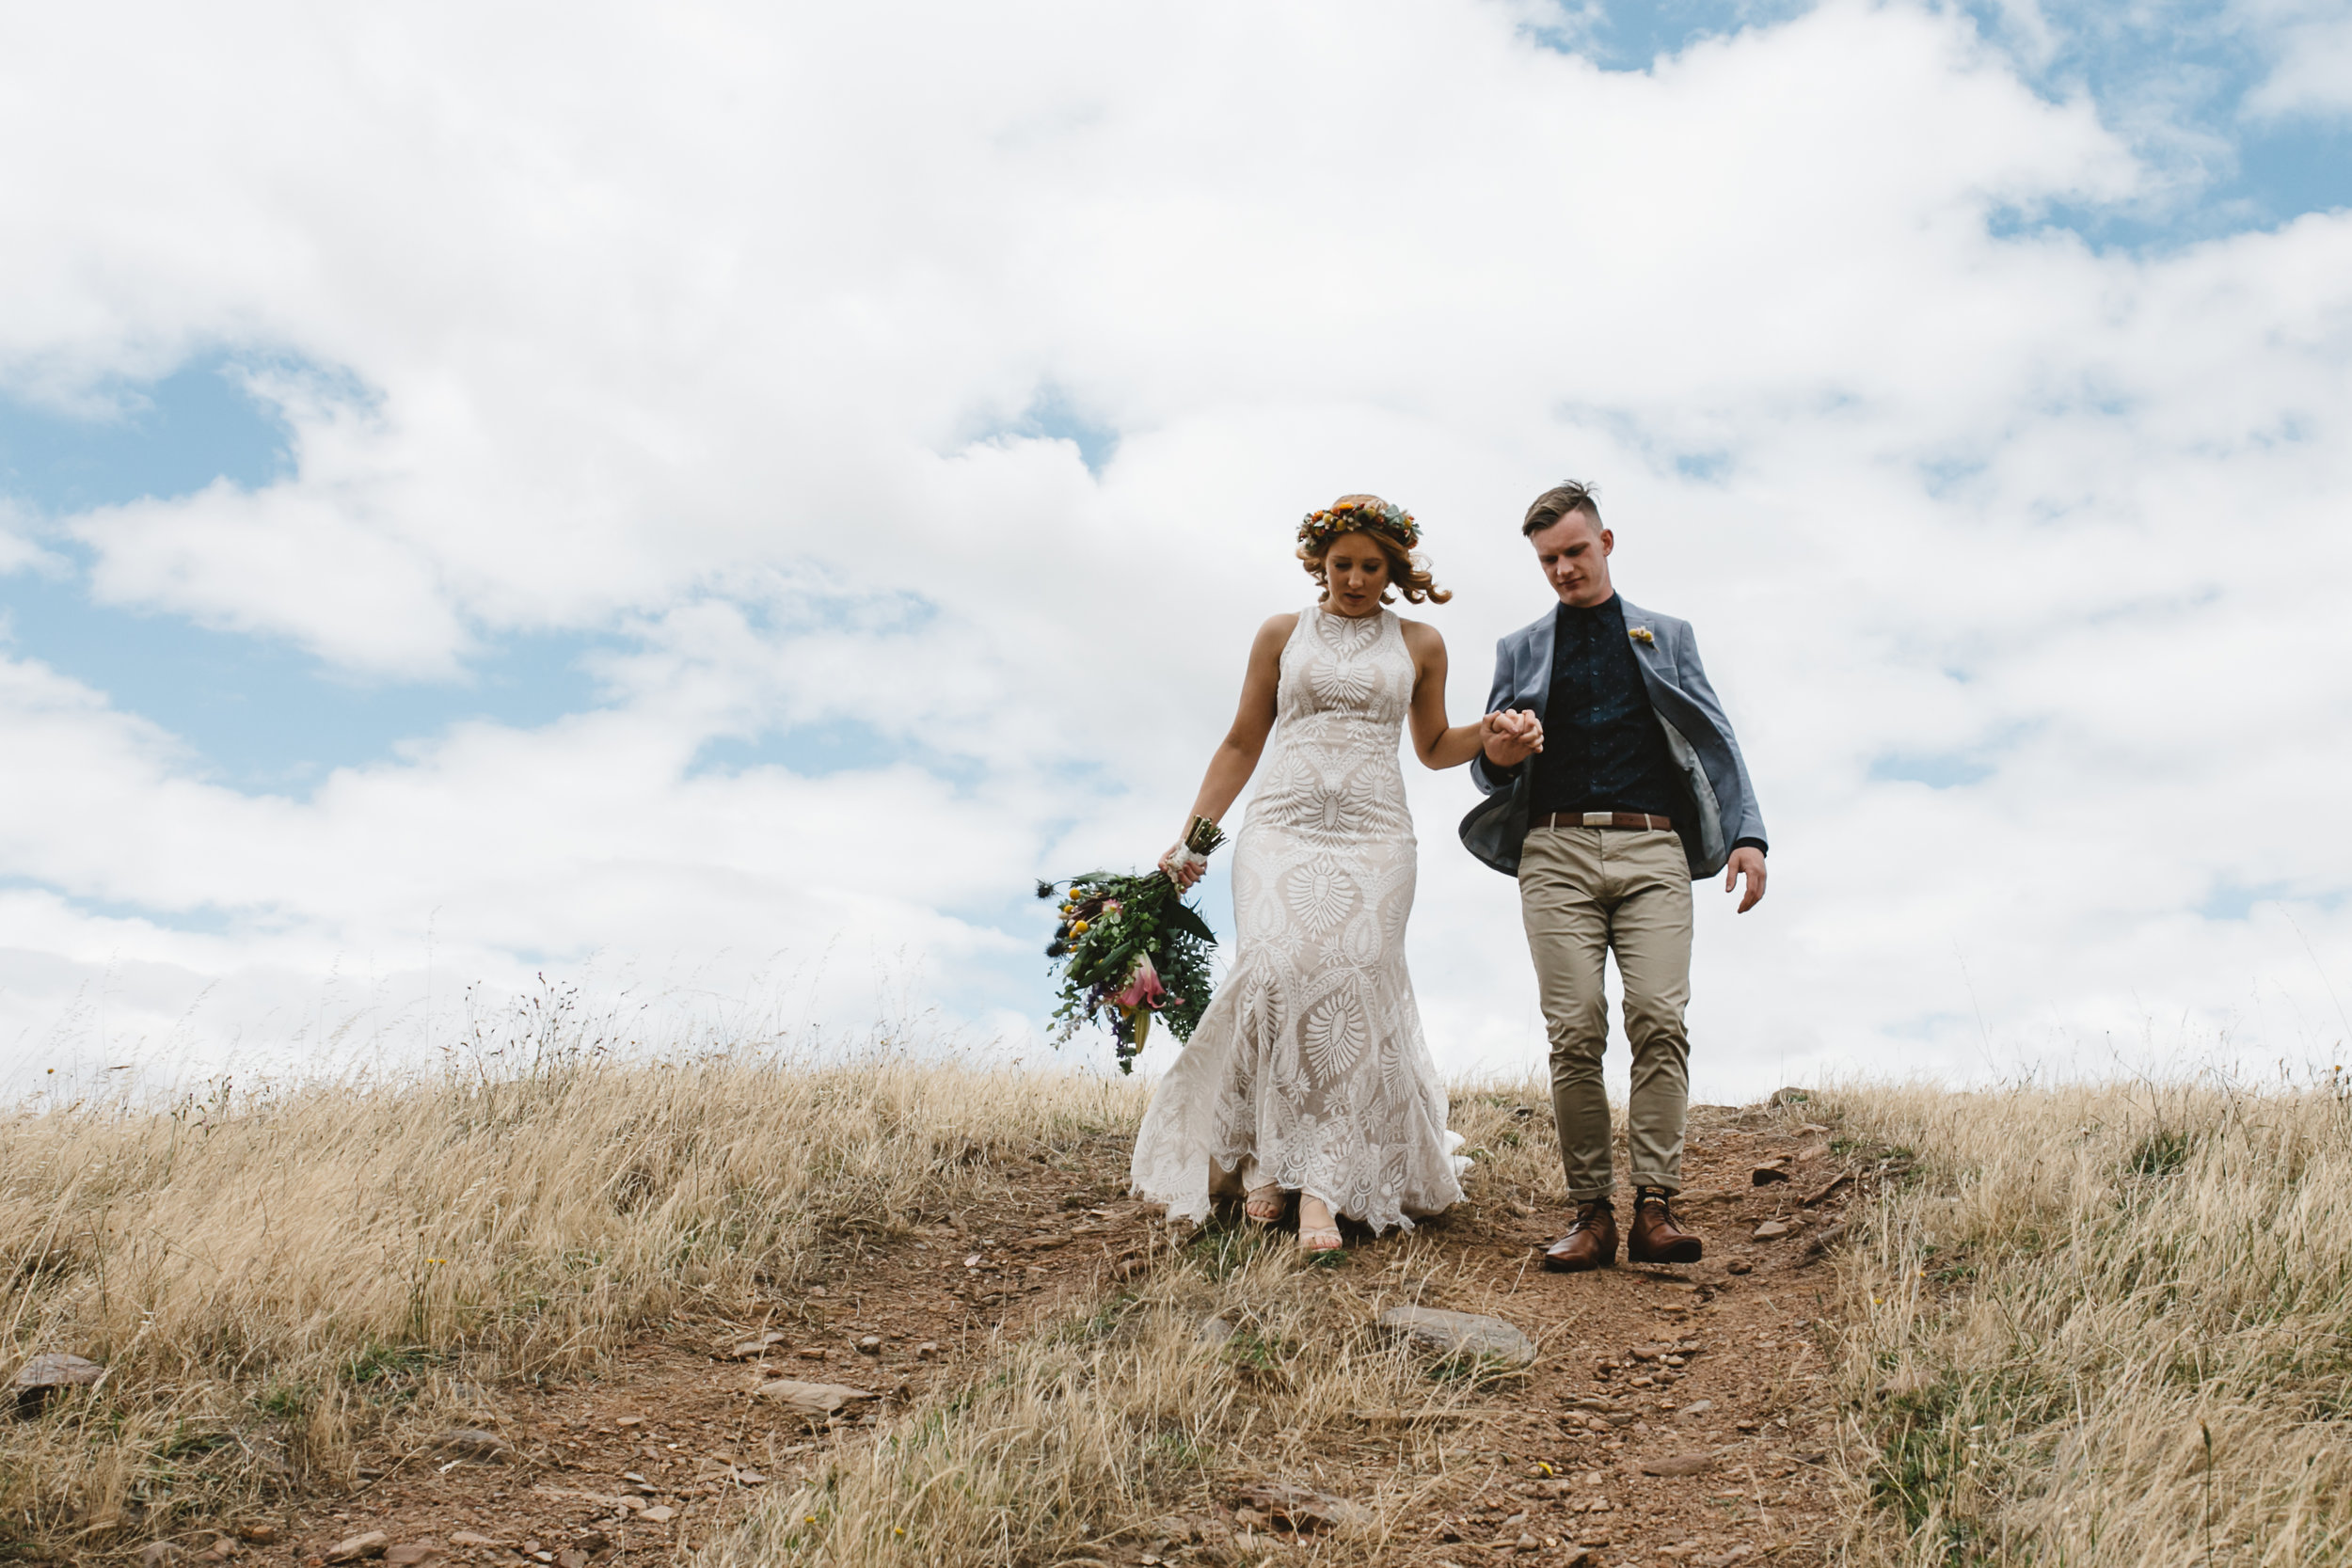 Rustic wedding venues in Mornington and wedding budget for australian couples